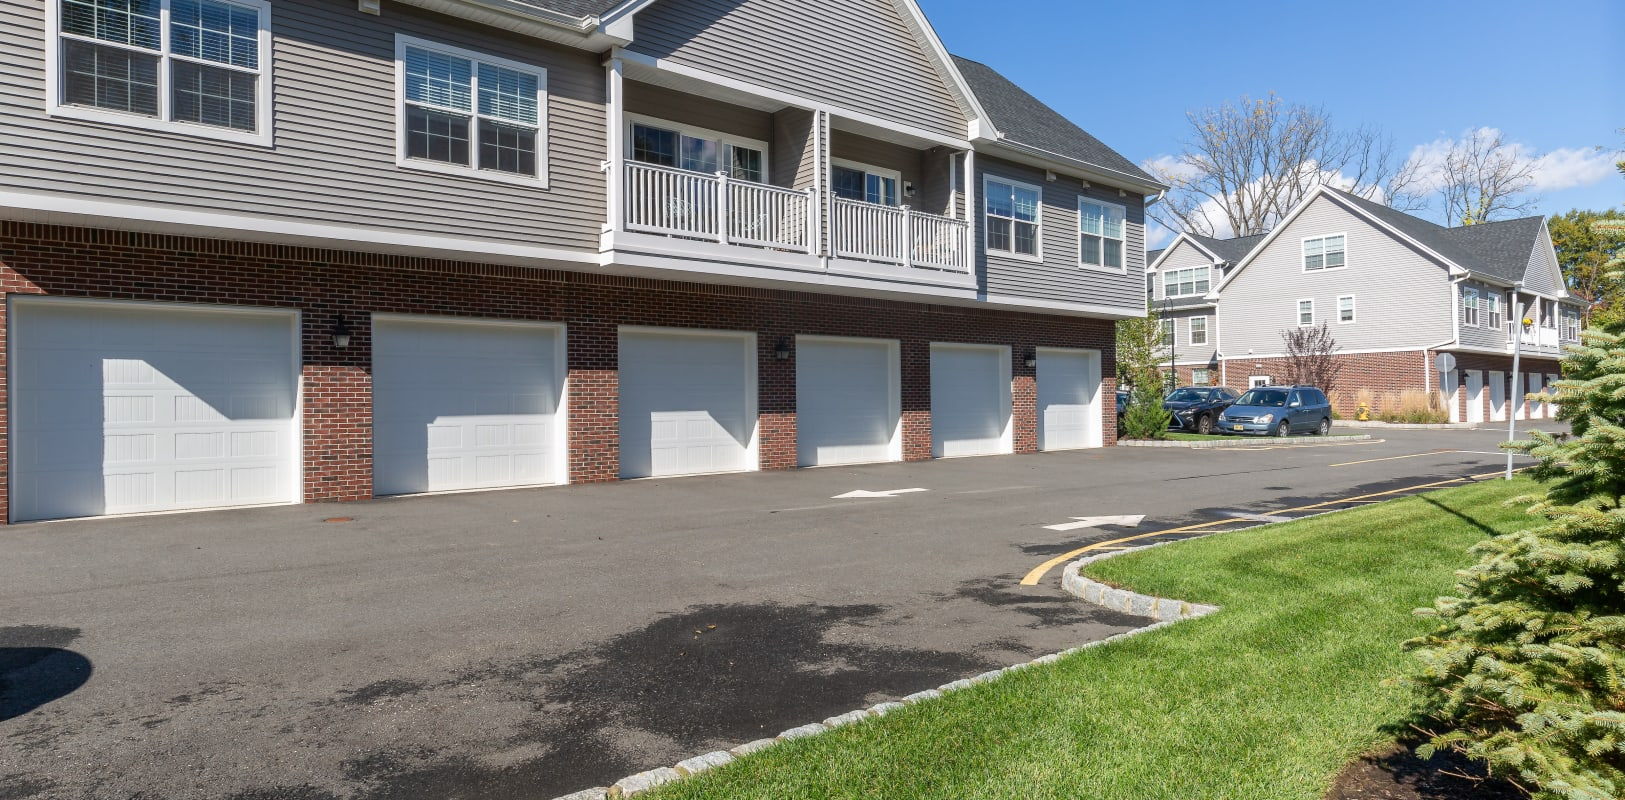 Private garages at Zephyr Ridge in Cedar Grove, New Jersey